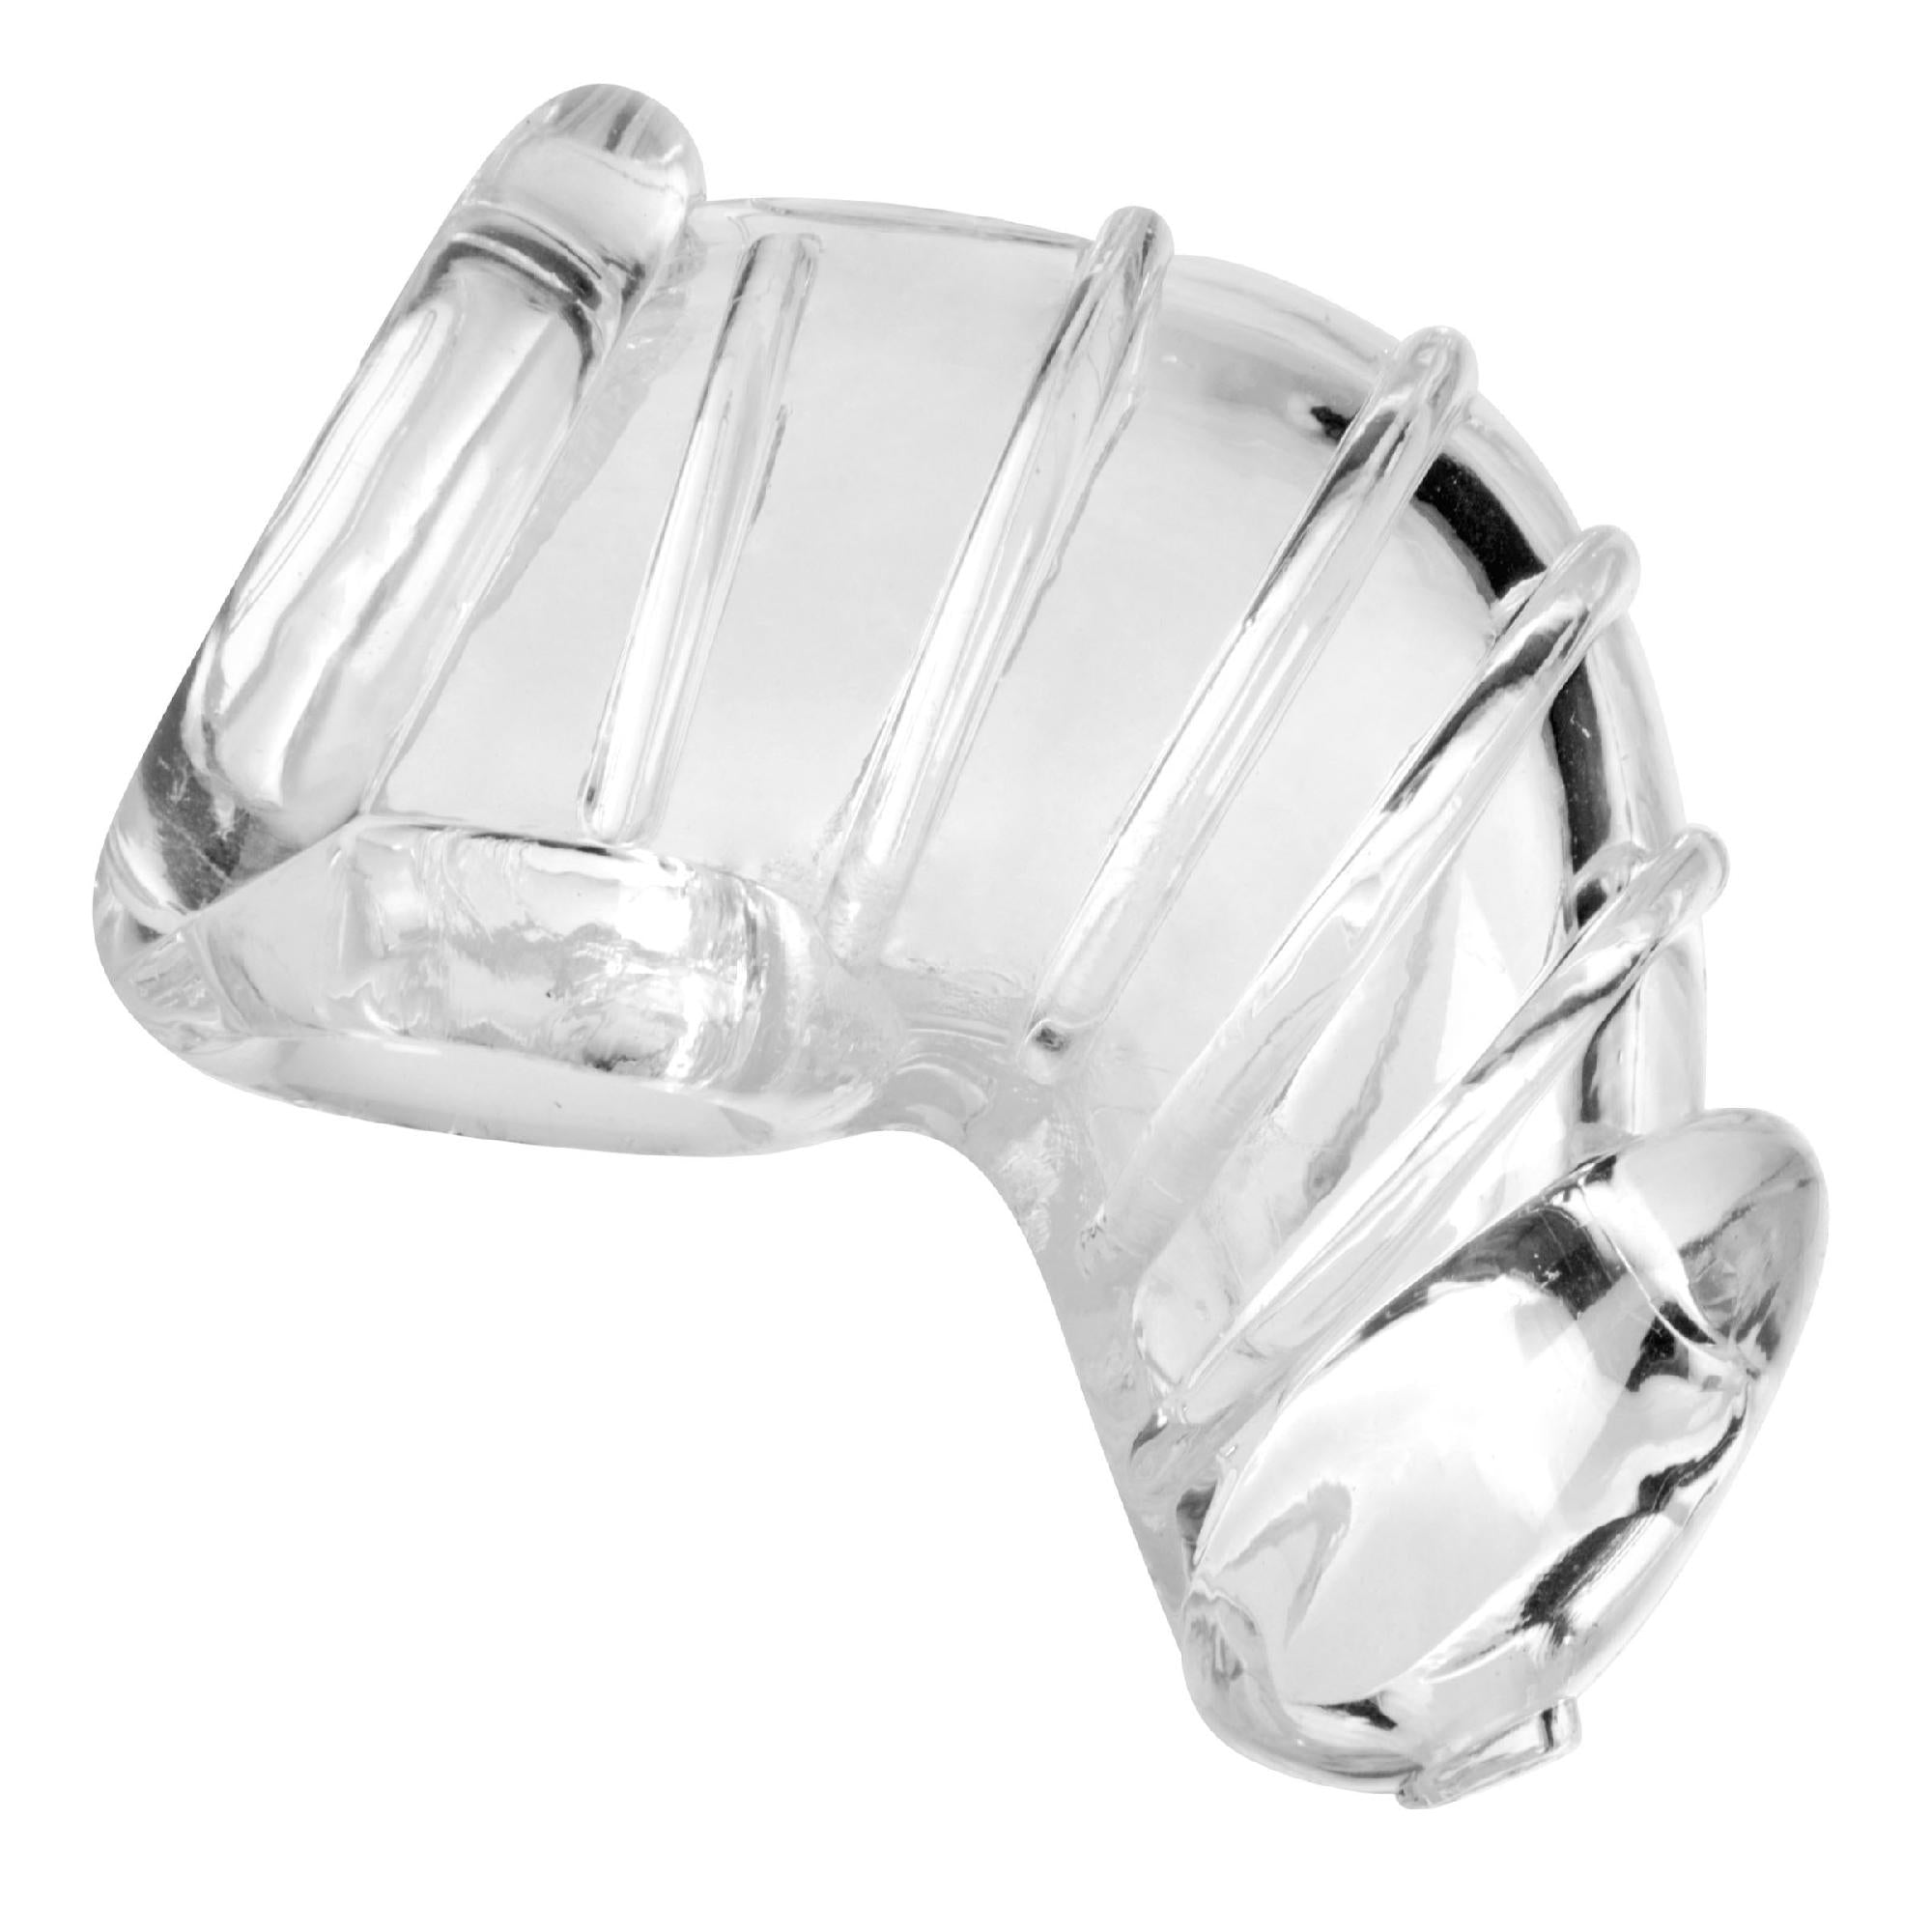 Detained Soft Body Chastity Cage